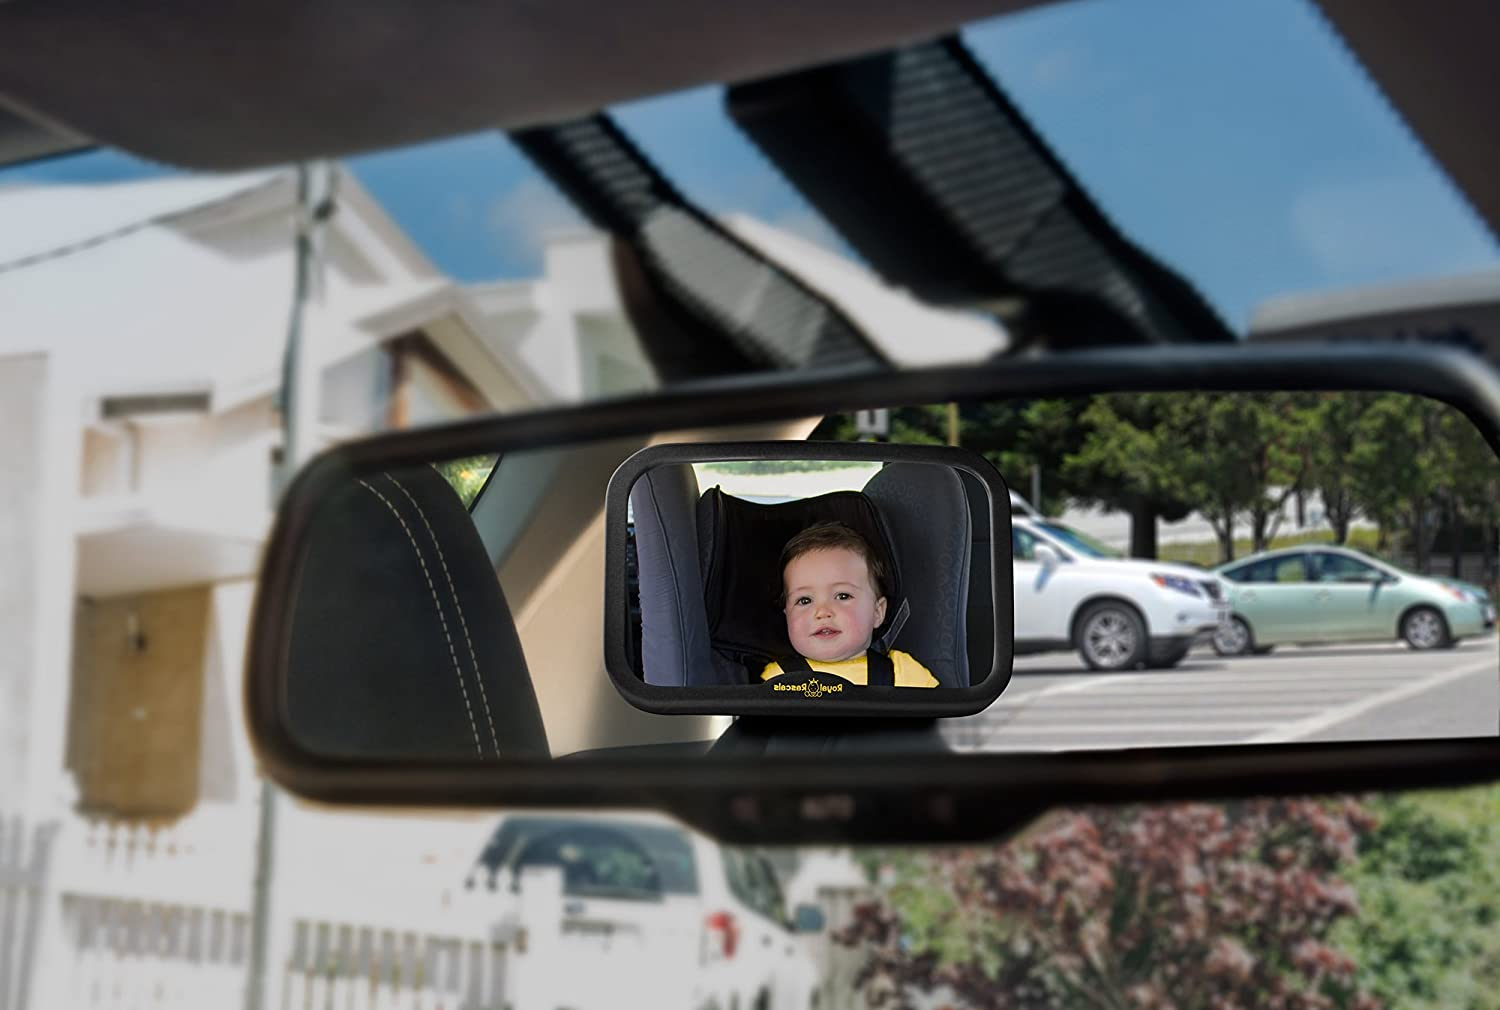 Rear View Baby Car Seat Mirror to See Rear Facing Infants and Babies ROYAL RASCALS Baby Car Mirror for Back Seat Shatterproof Baby Mirror for Car Updated Premium Model Safest Yellow Frame